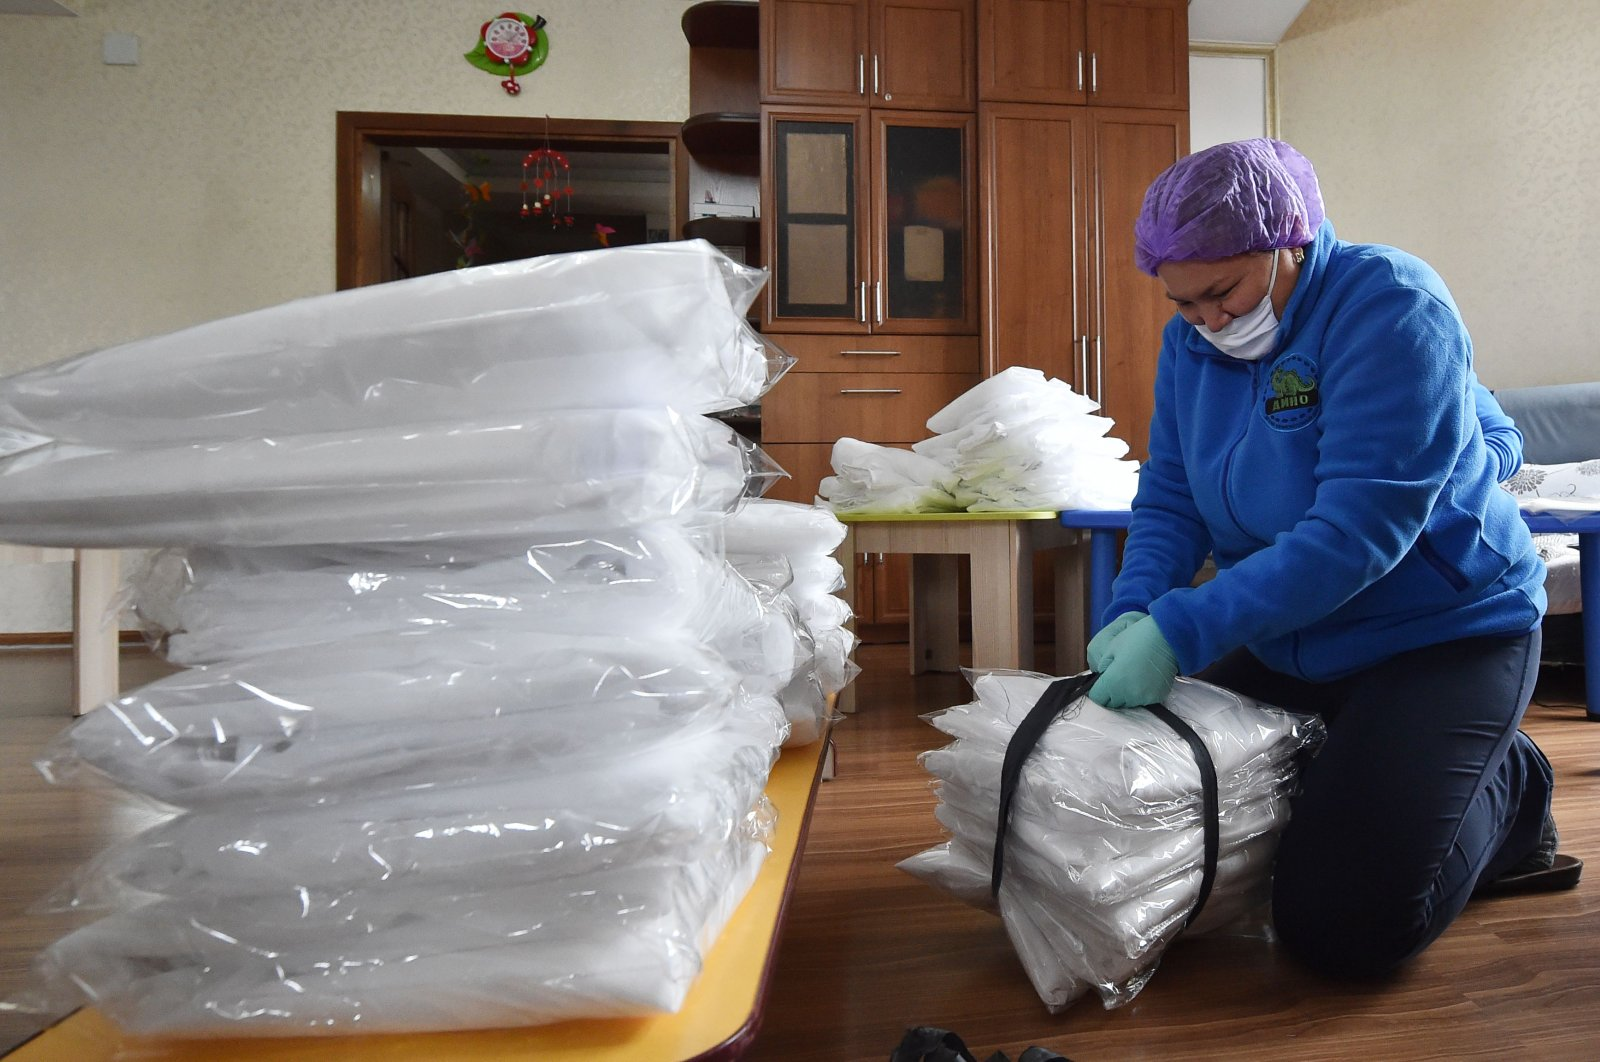 Civil activists wearing face masks and protective gloves pack protective suits before supplying to hospitals in Kyrgyzstan, in Bishkek on April 15, 2020. (AFP Photo)